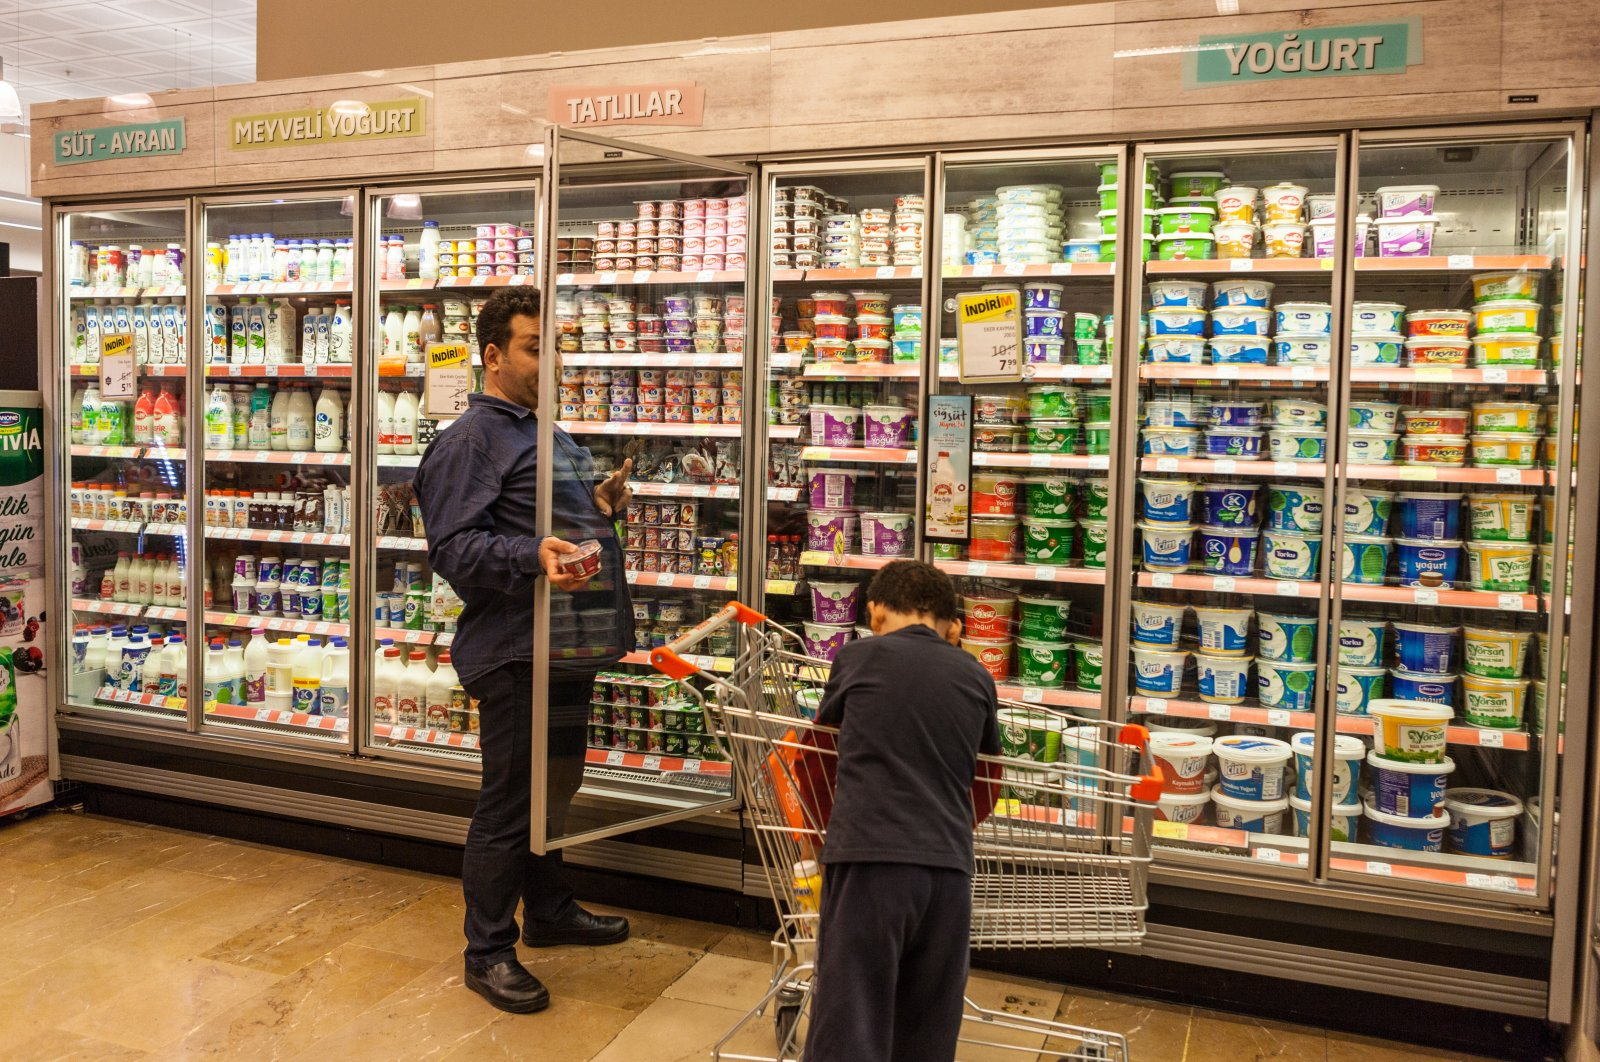 A man shops with his son at a Migros store in Istanbul, Turkey, on Oct. 10, 2018. (Sabah Photo)